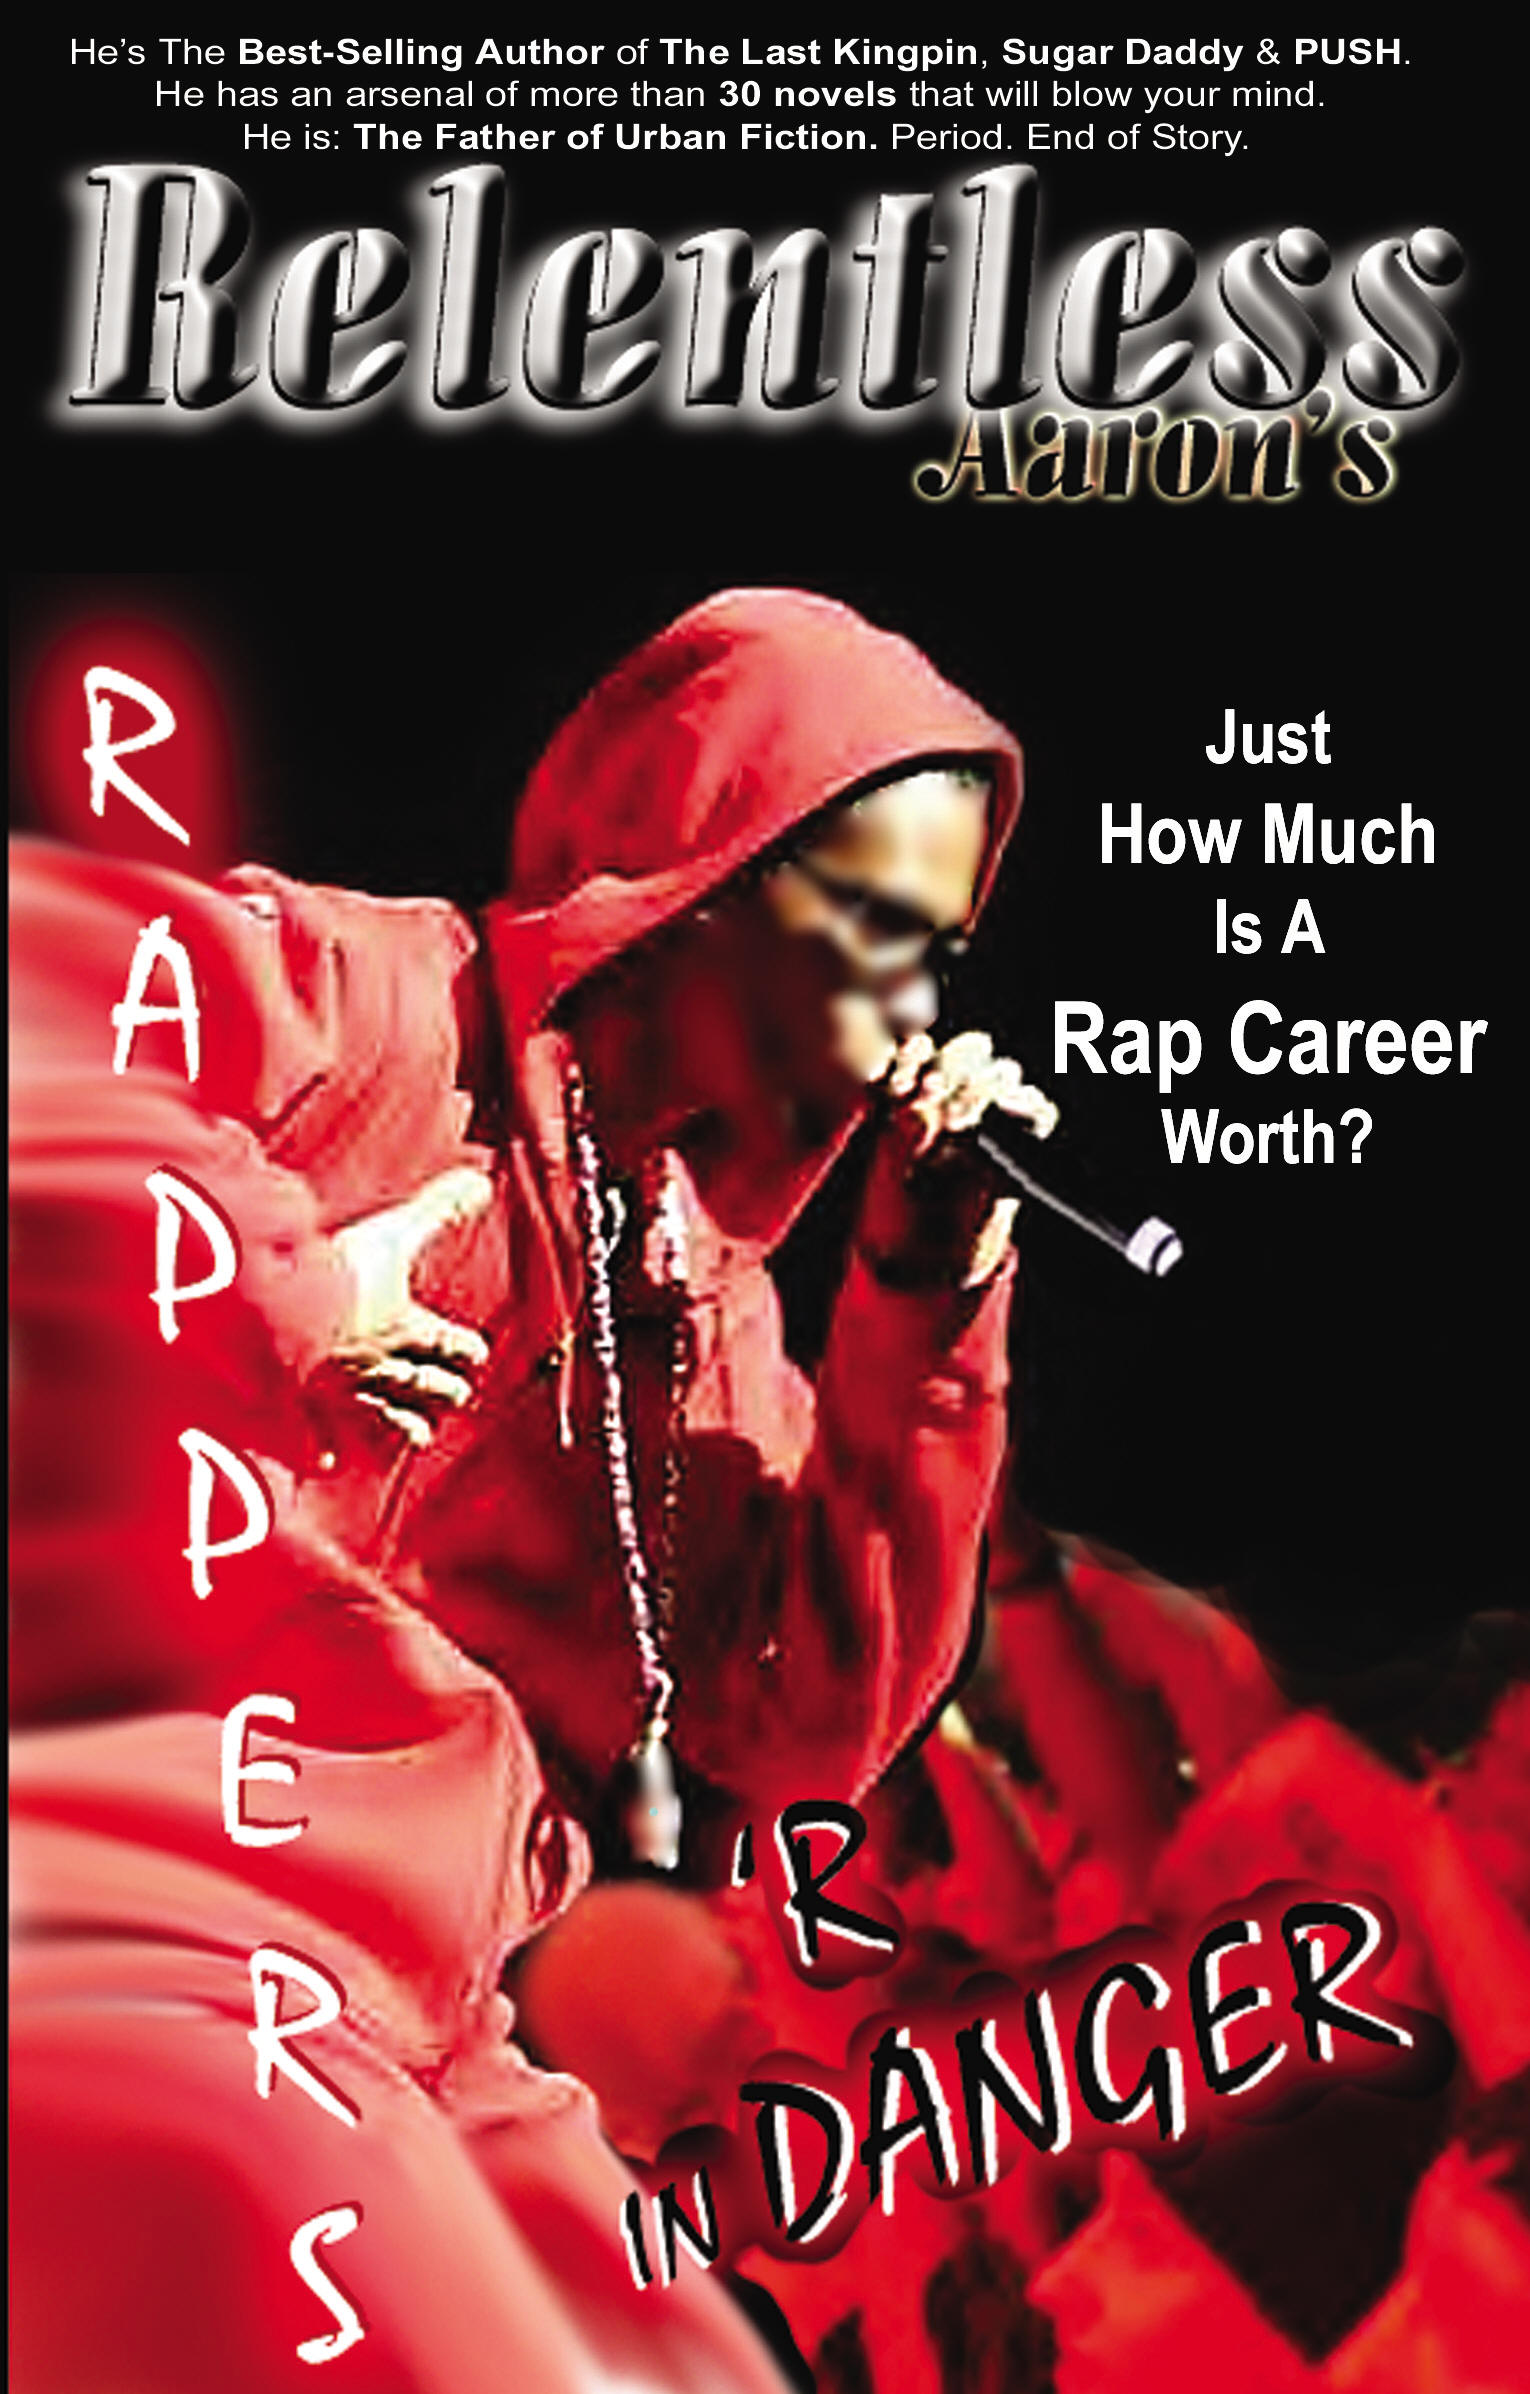 Rappers 'R In Danger by Relentless Aaron